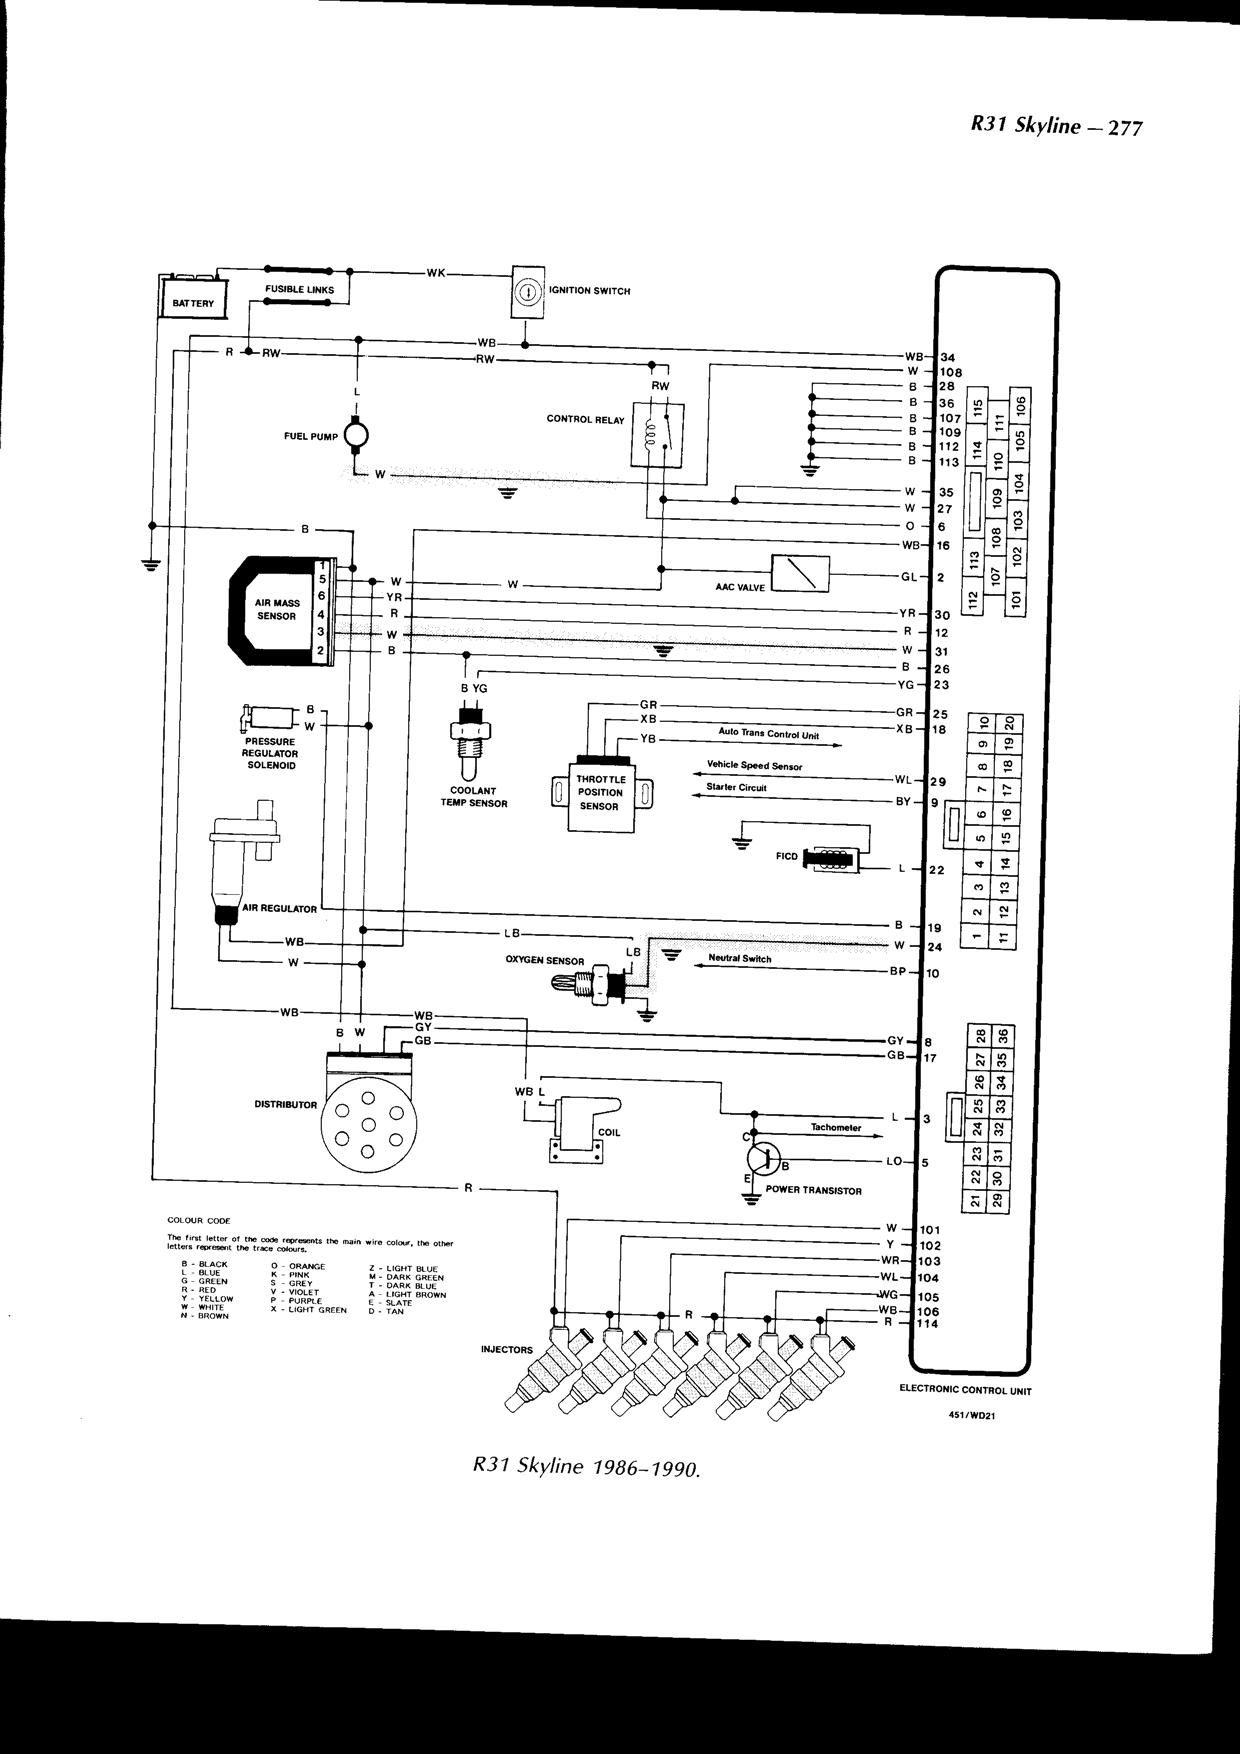 nissan 1400 electrical wiring diagram nissan diagram, nissan Nissan Titan Wiring Schematic nissan 1400 electrical wiring diagram